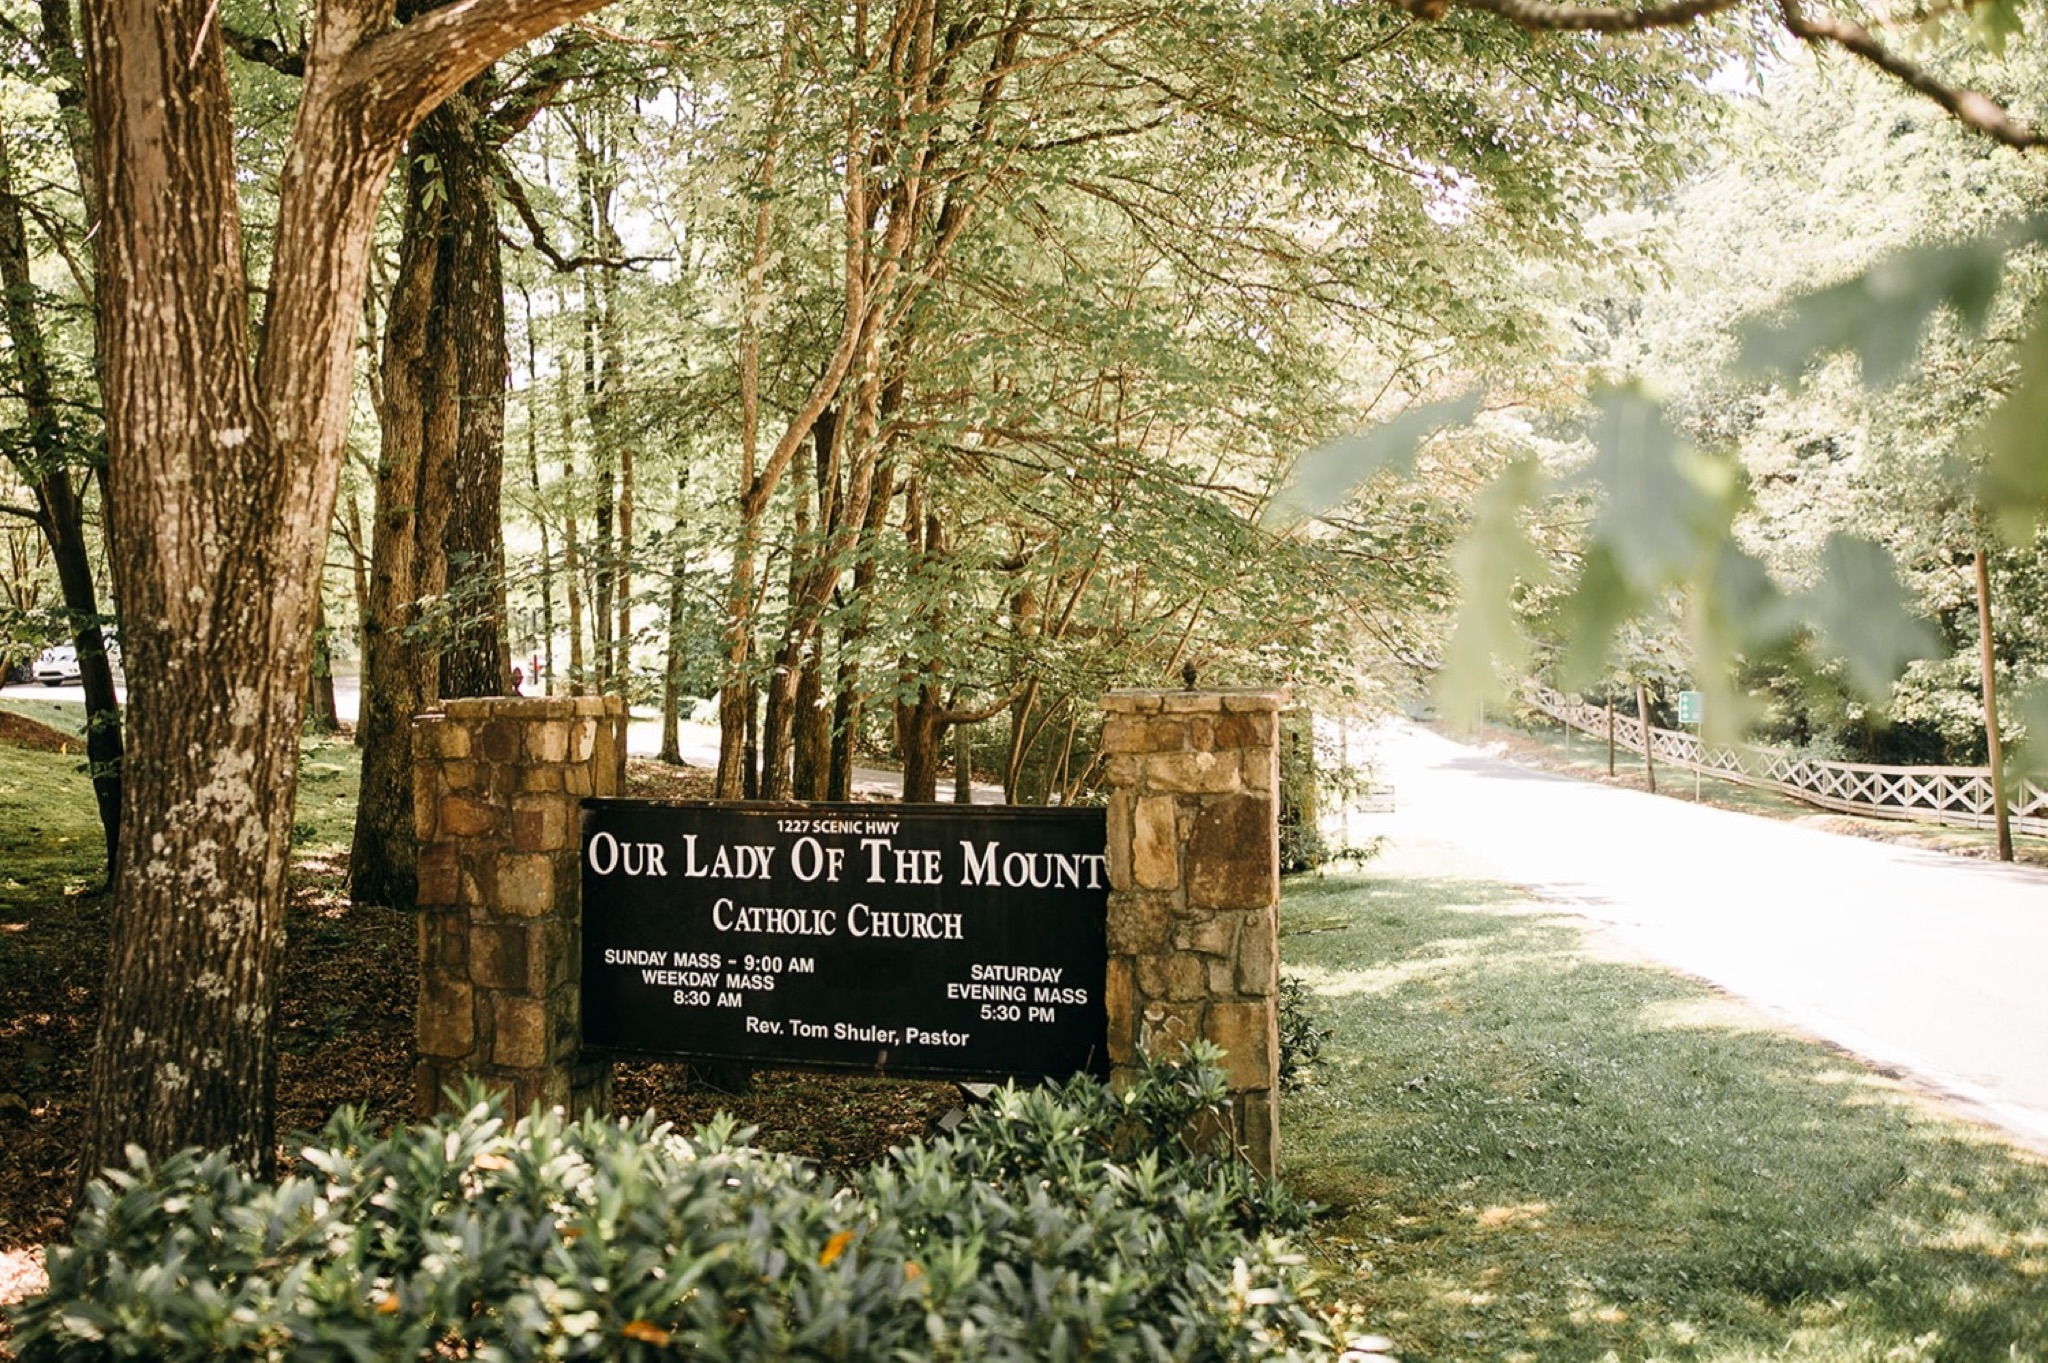 sign for Our Lady of the Mount Catholic Church on Lookout Mountain near Chattanooga